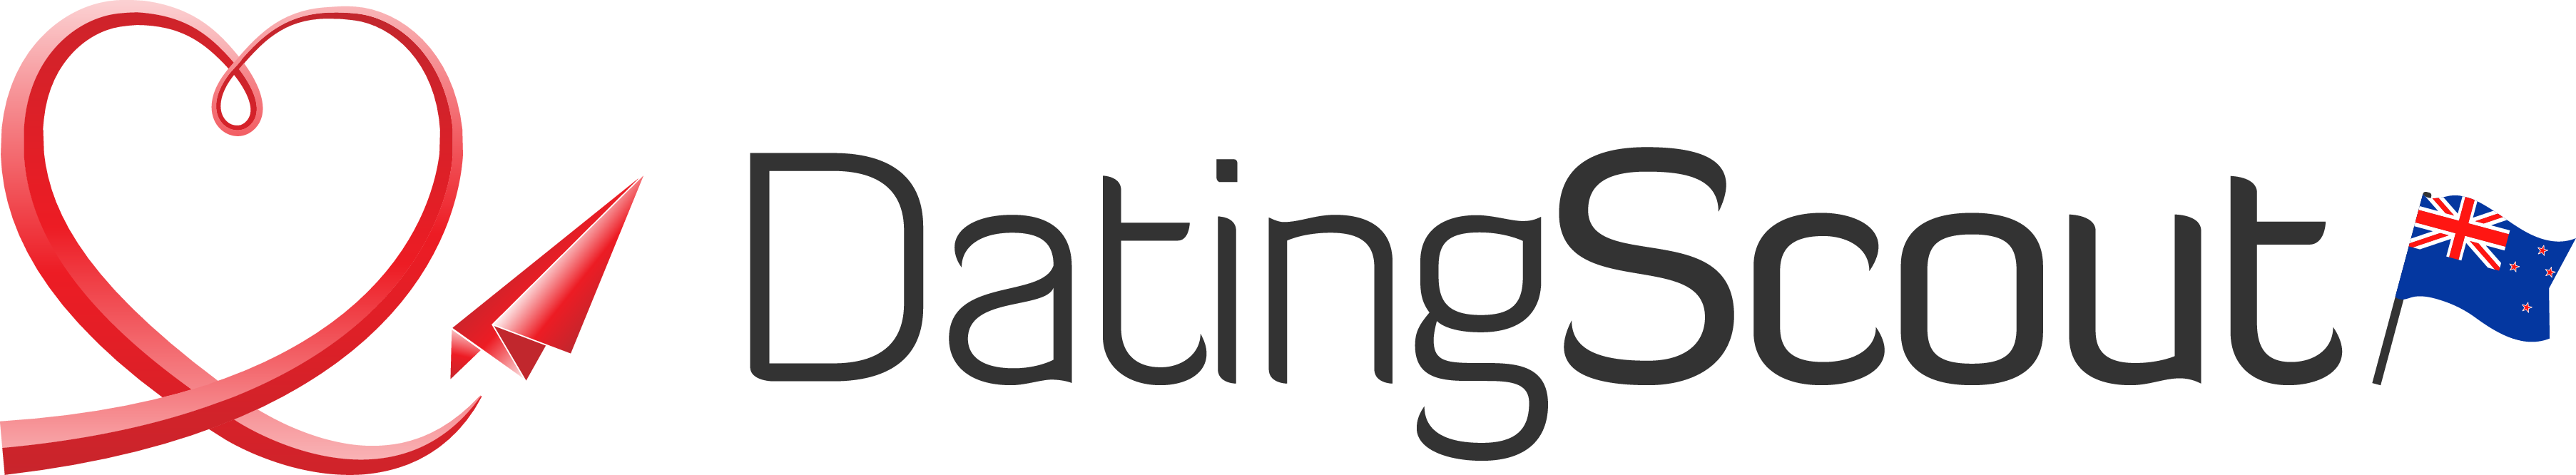 Datingscout.nz Logo